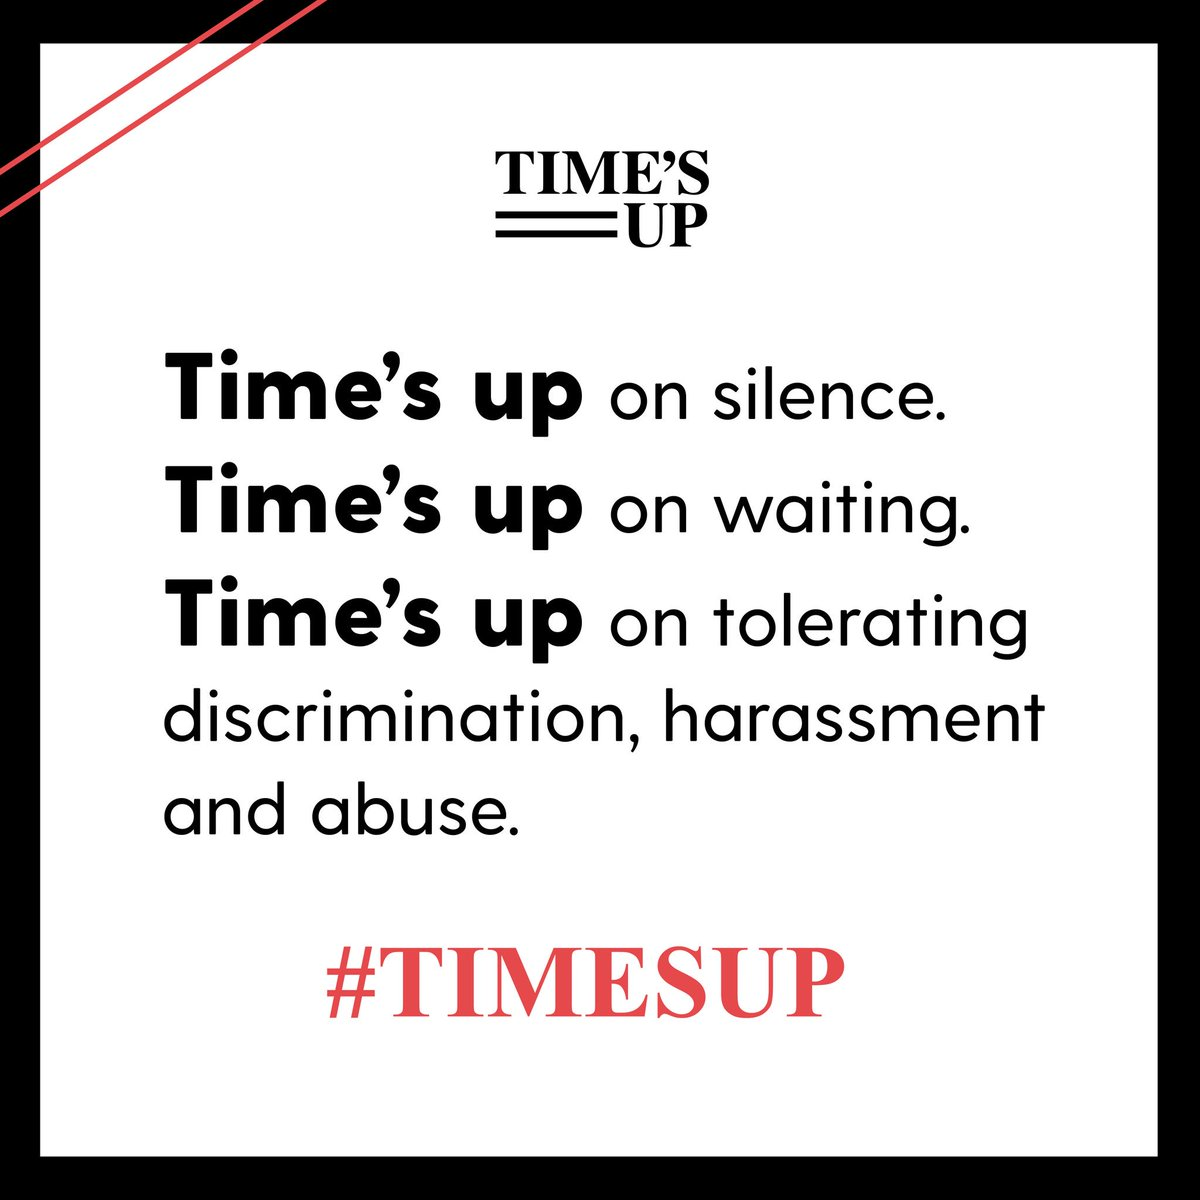 I stand with women across every industry to say #TIMESUP on abuse, harassment, marginalization andunderrepresentation.Join me! Sign thestatement of solidarity & donate to the  Leg@timesupnwal Defense Fund: https://t.co/Lw3po9Pg8Q